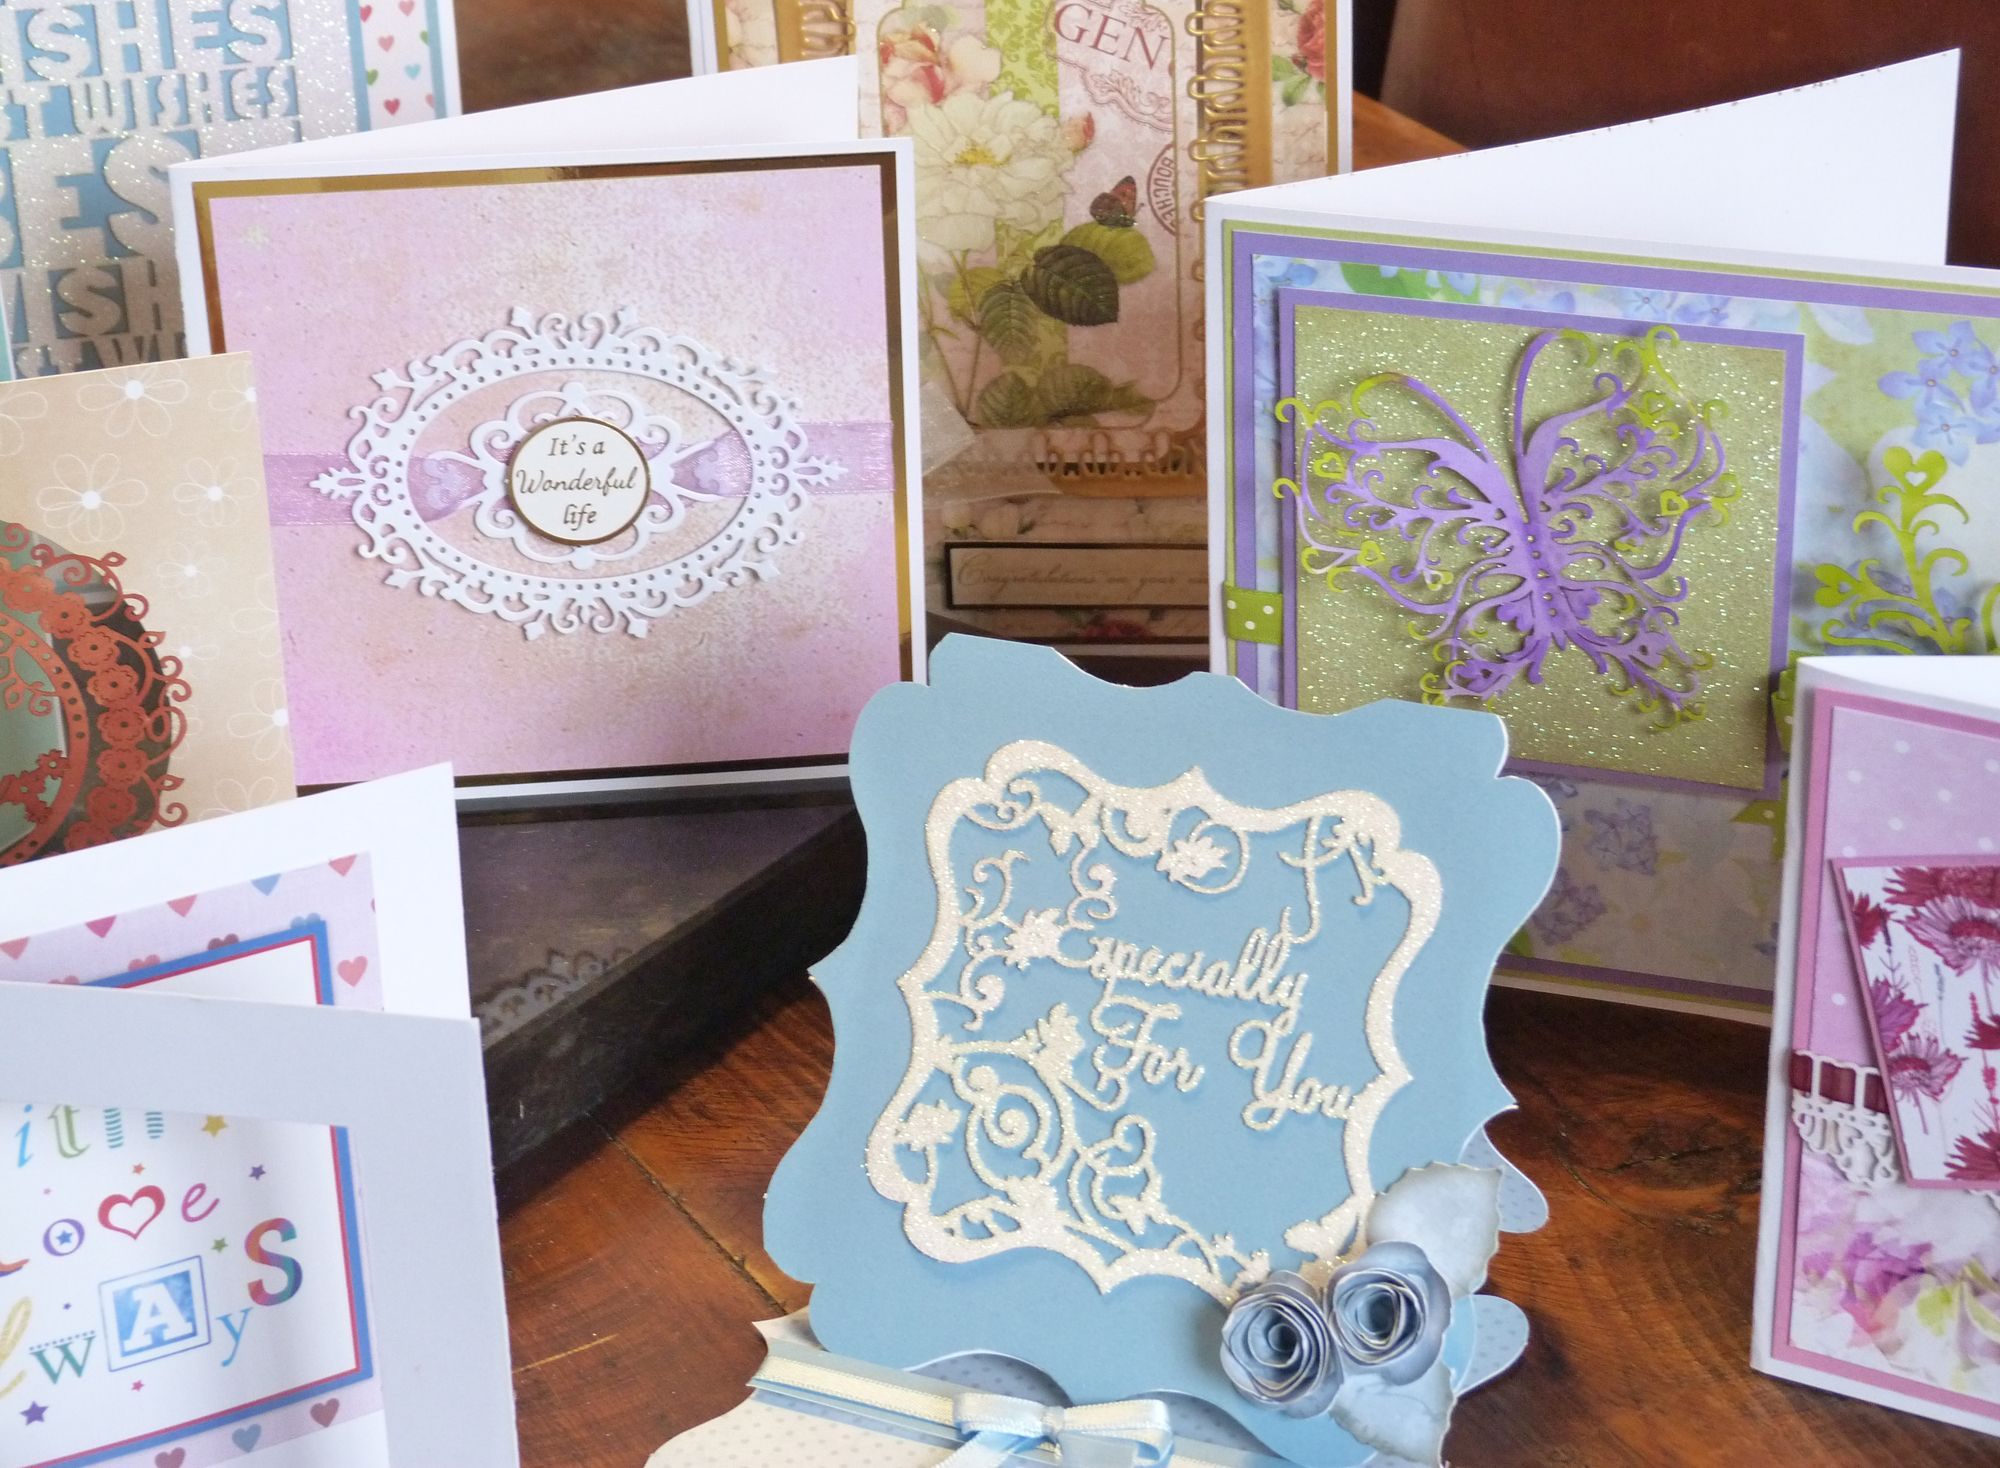 Scrapbook ideas hobbycraft - All Tattered Lace Die Designs Are Available Exclusively Through Hobbycraft